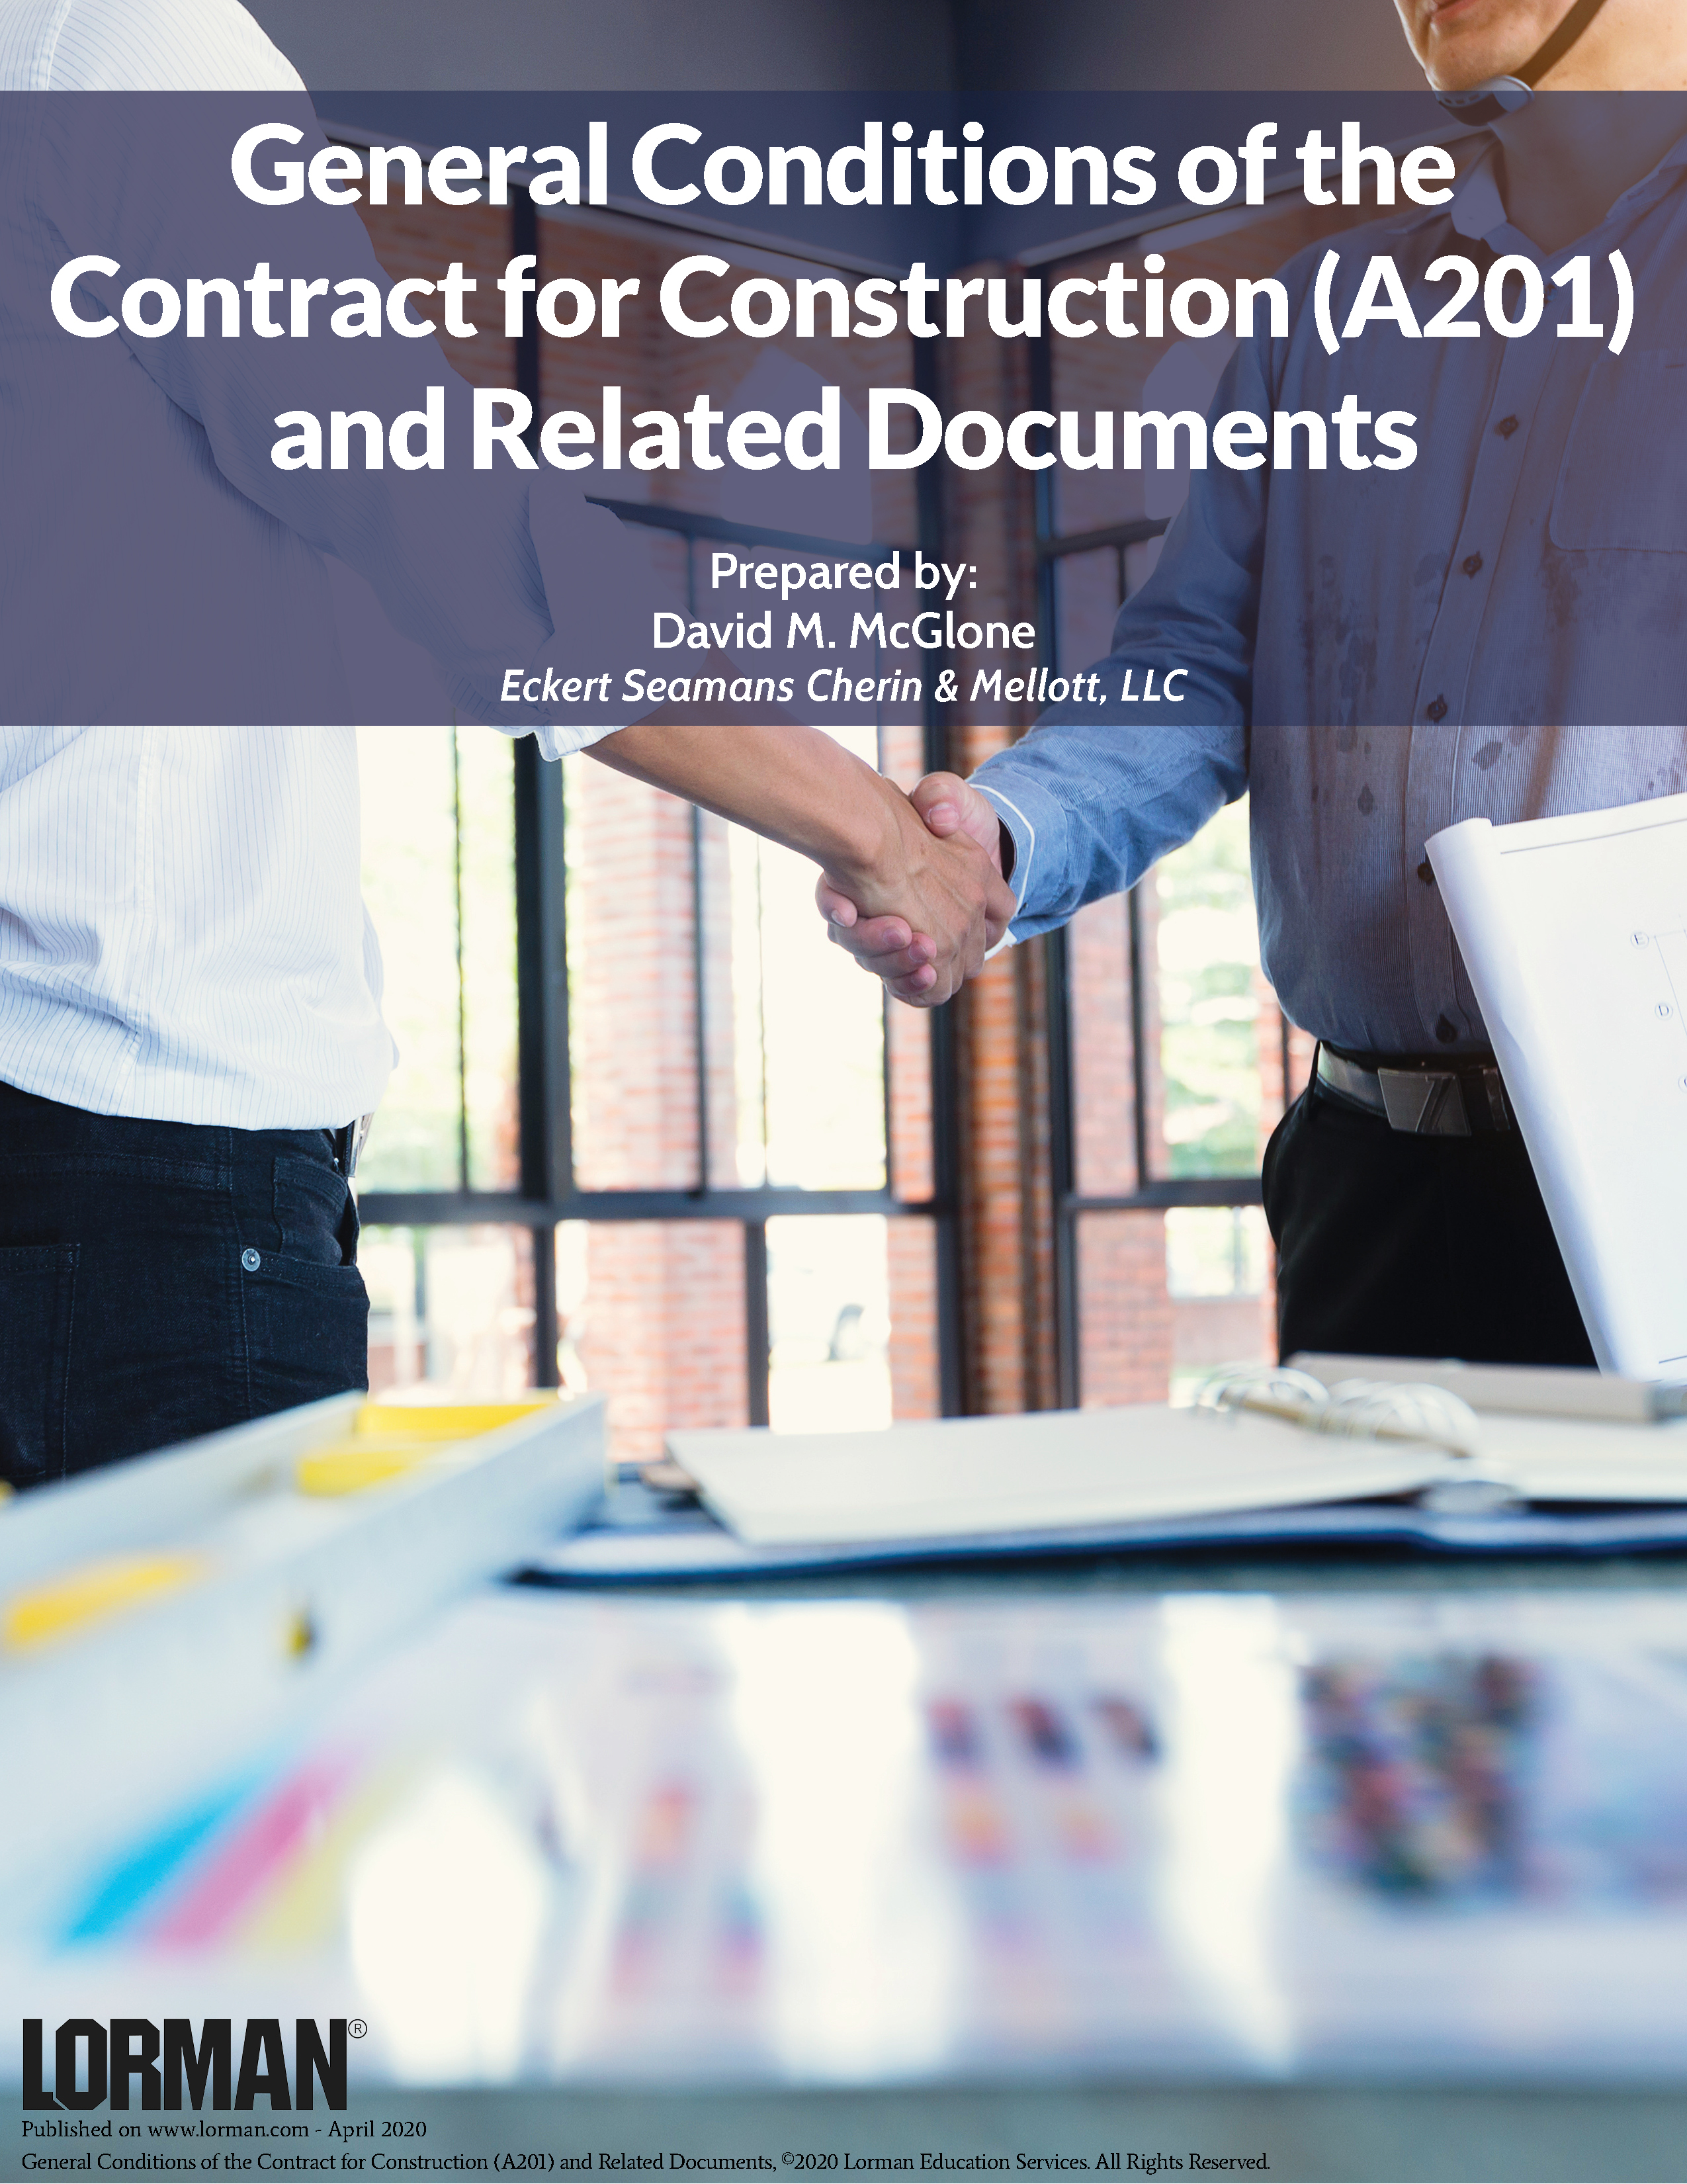 General Conditions of the Contract for Construction (A201) and Related Documents